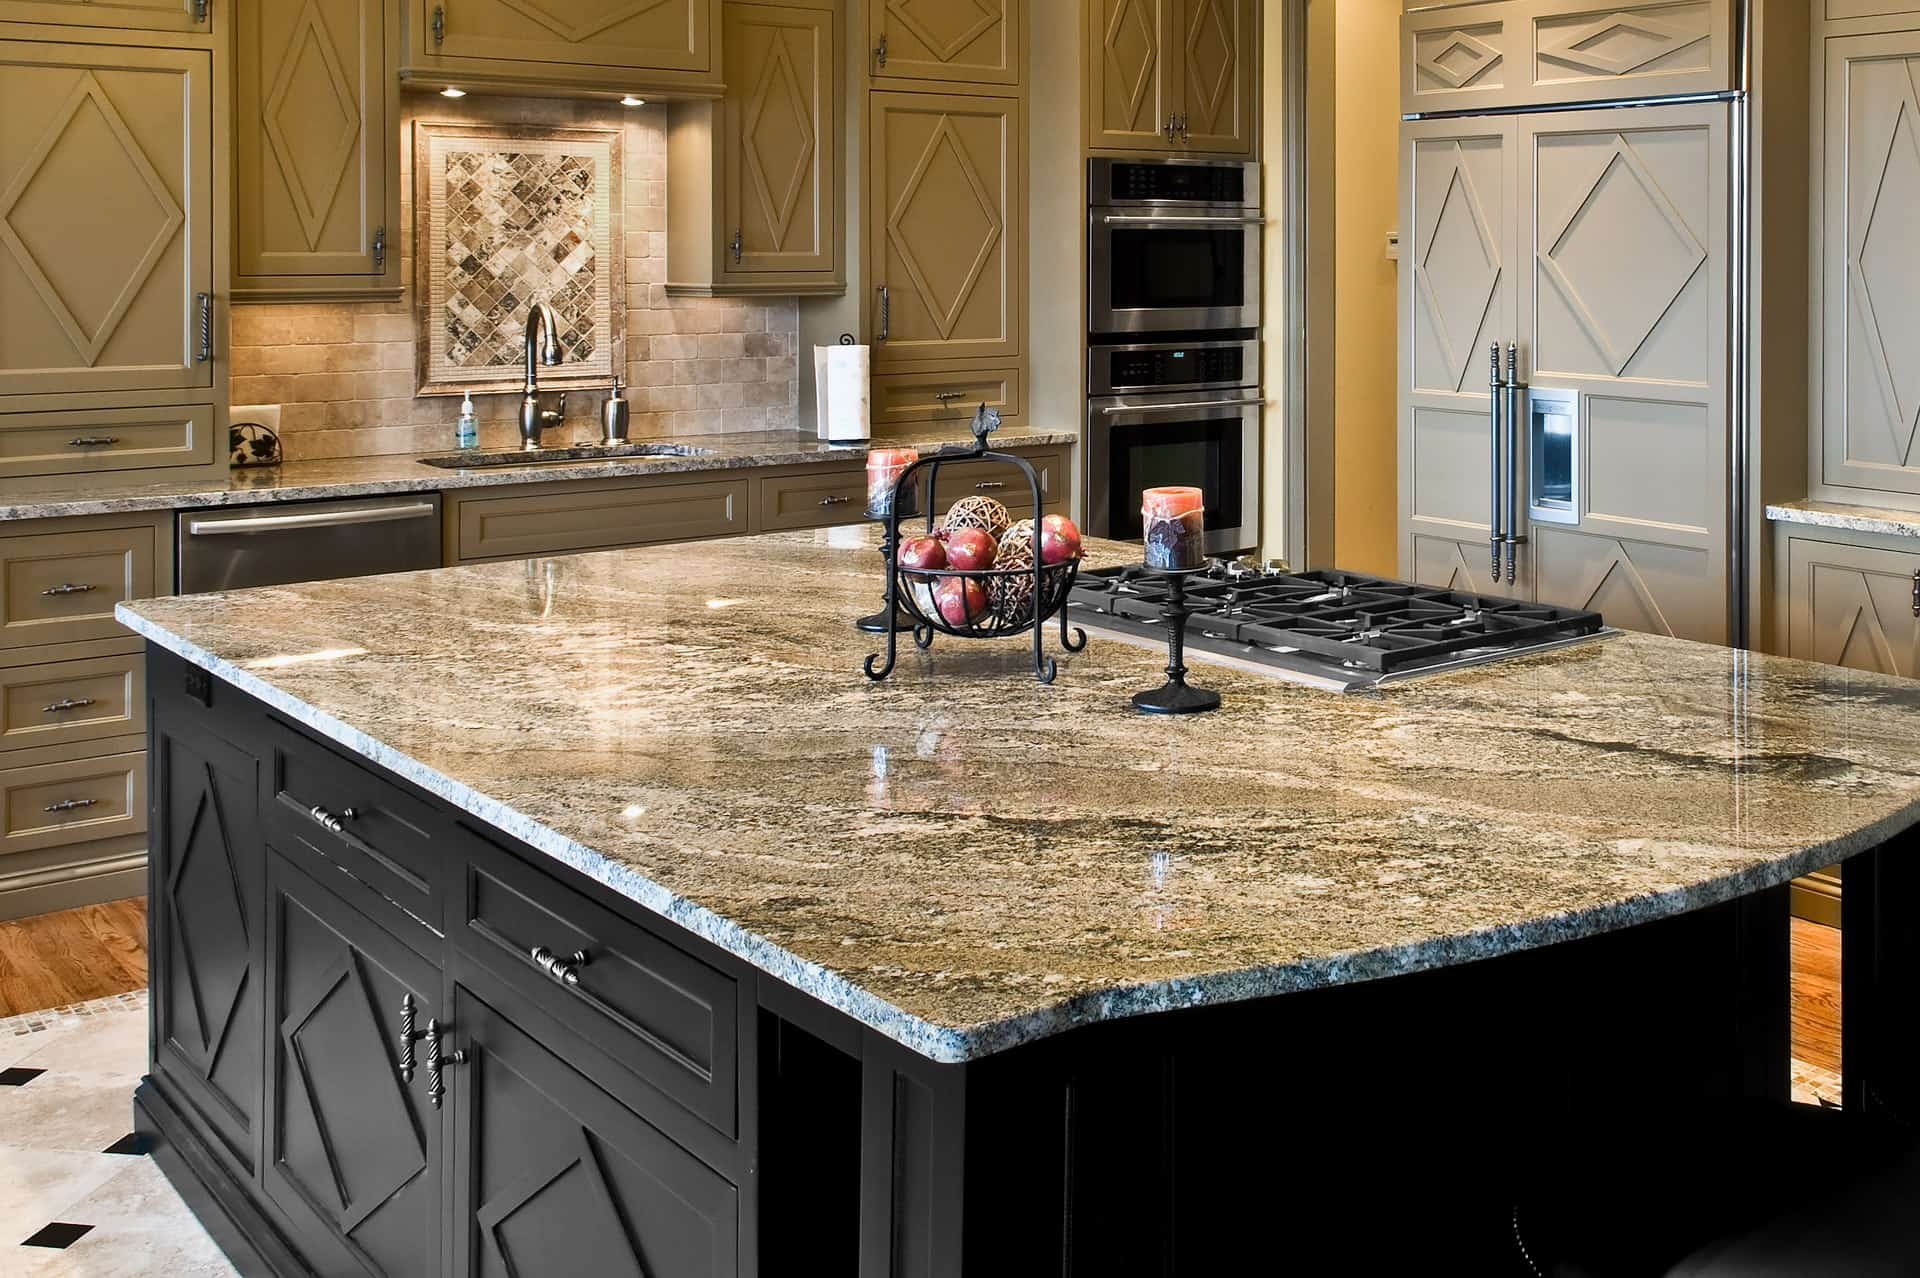 Stone Bench Tops Off Cuts The Benefits Of Engineered Stone Countertops Countertop Guides